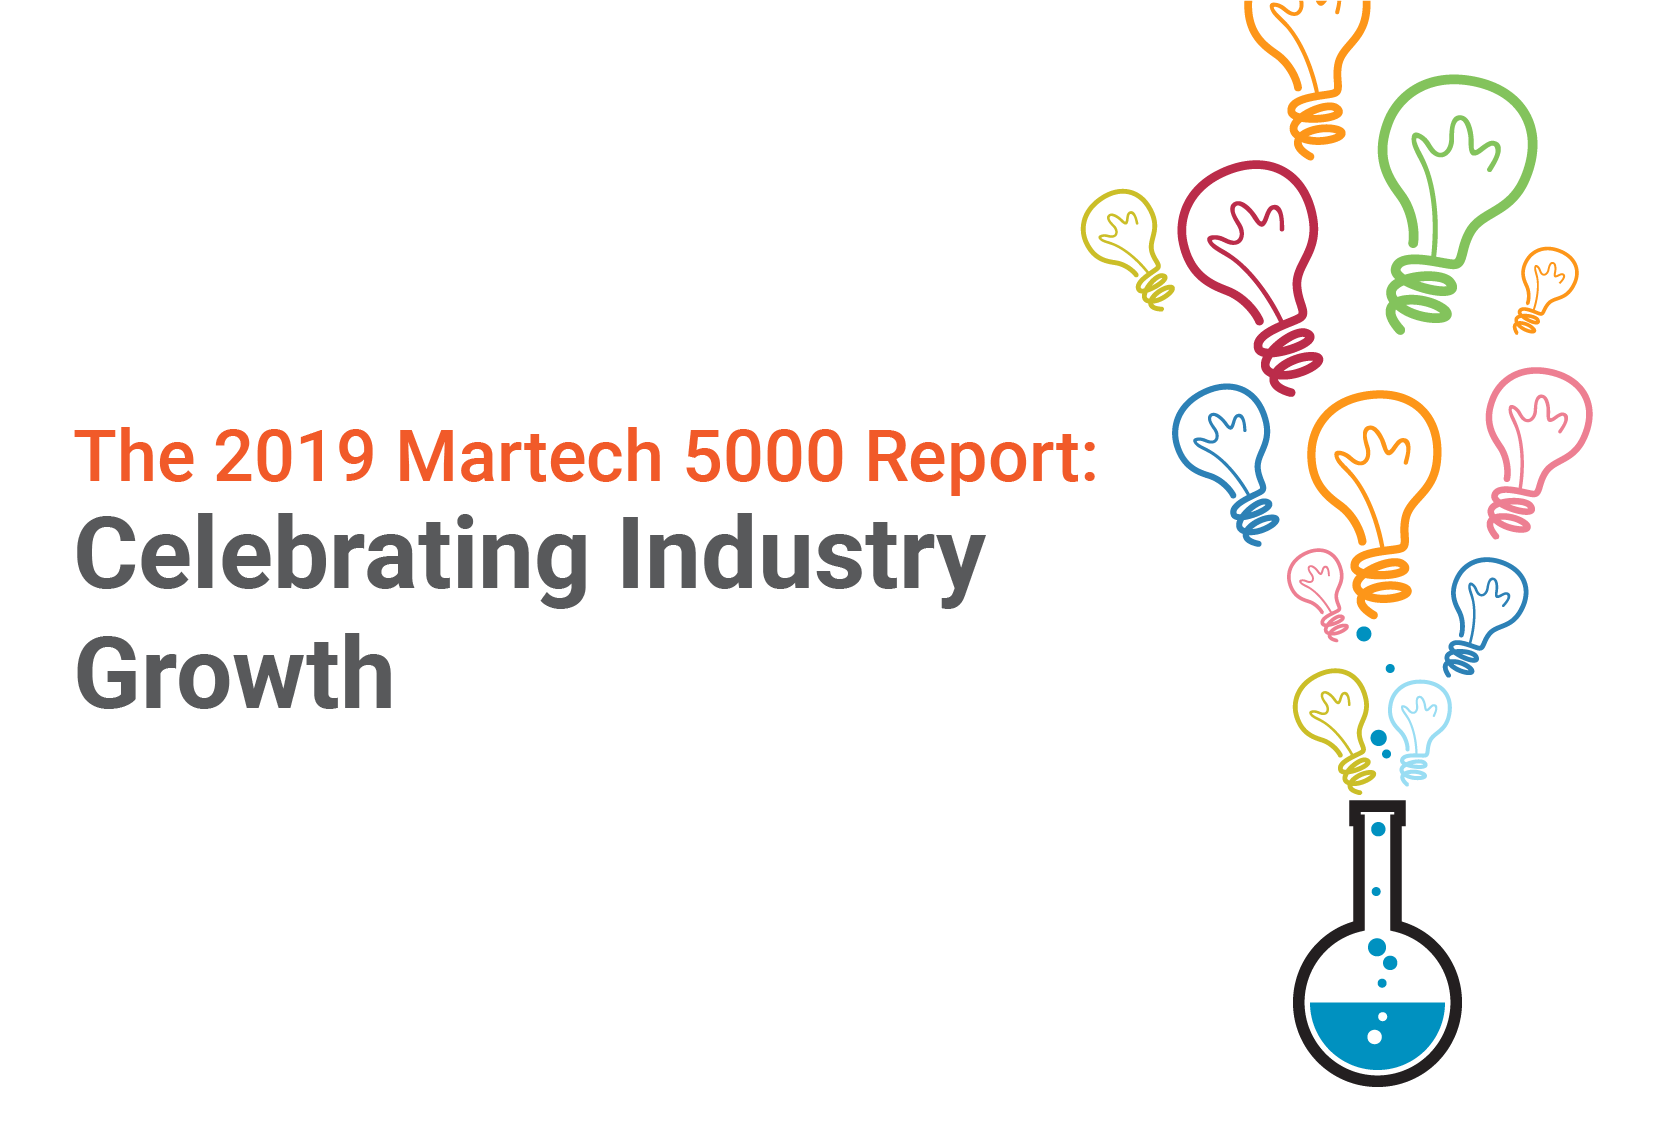 The 2019 Martech 5000 Report: Celebrating Industry Growth